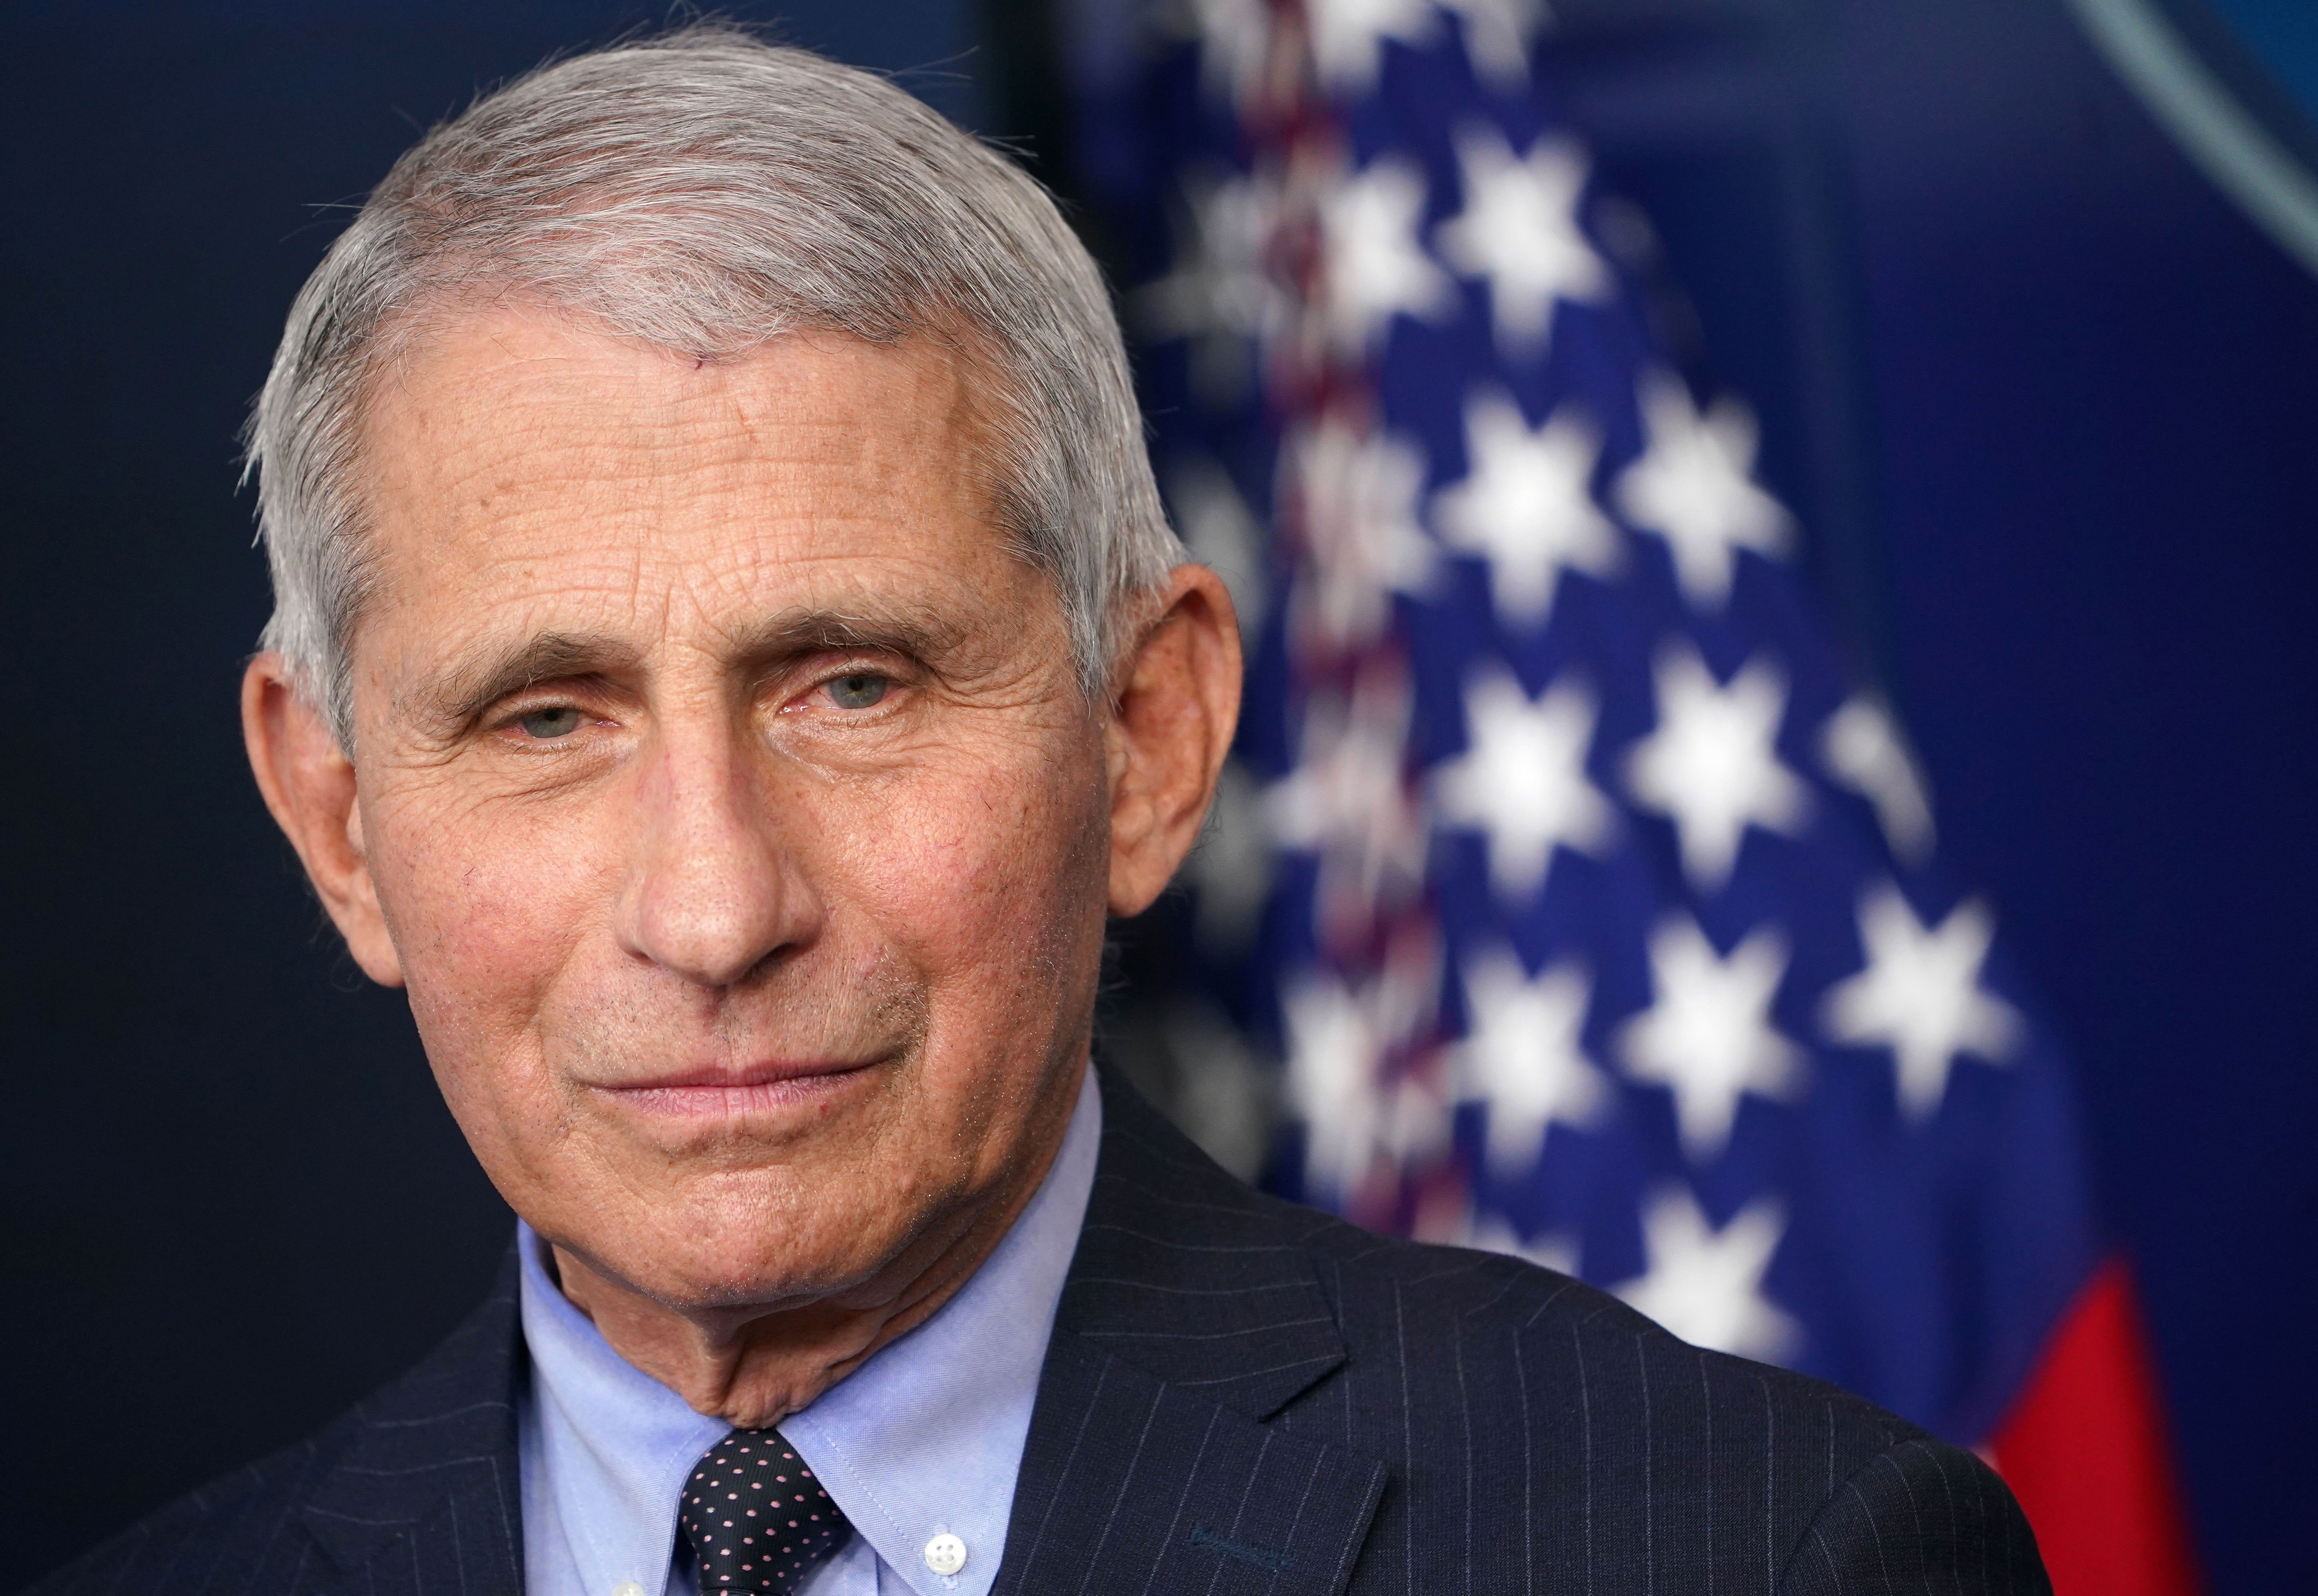 Dr. Anthony Fauci, director of the National Institute of Allergy and Infectious Diseases, attends a briefing at the White House on January 21.